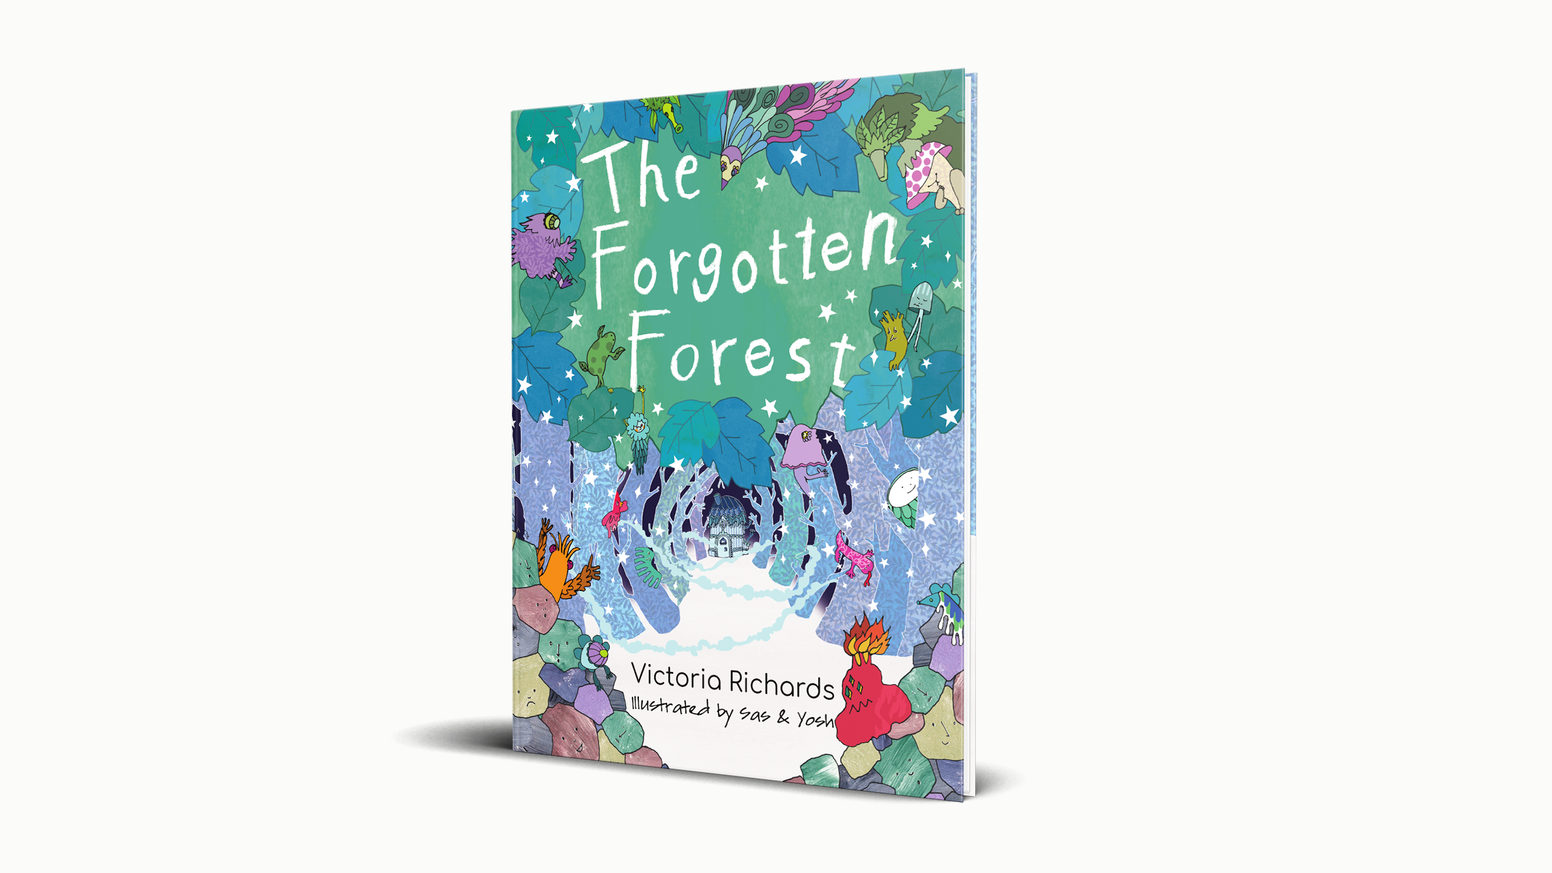 A diverse and inclusive personalised picture book by Matt Harbord ...